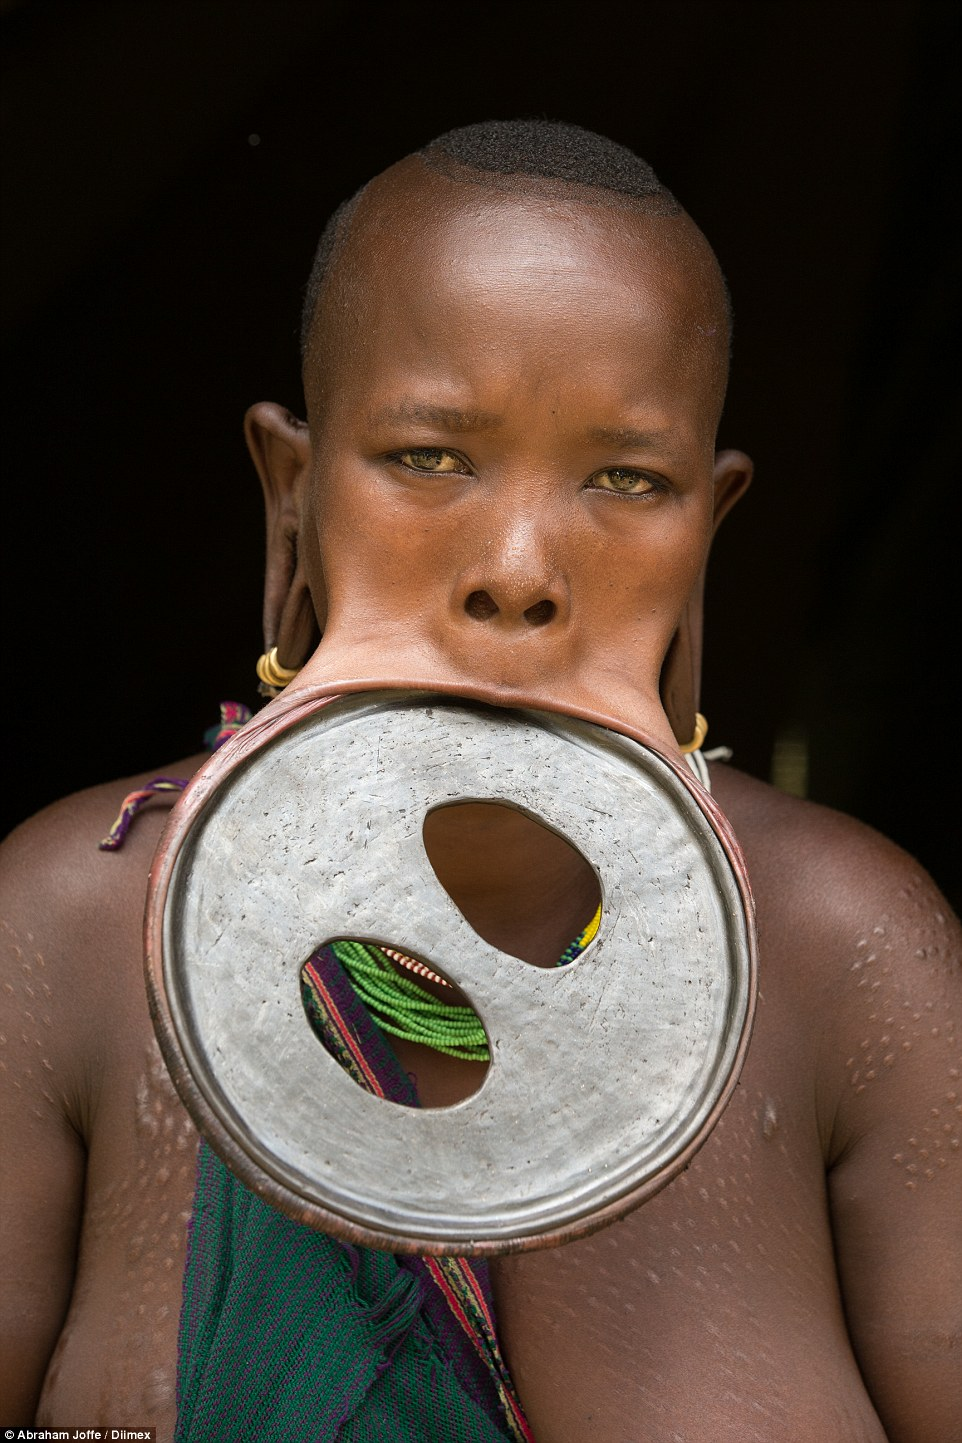 Ataye Eligidagne, 20, dons the largest lip disc in the world. The hardened clay disc is 59.5 cm in circumference and 19.5 cm in diameter